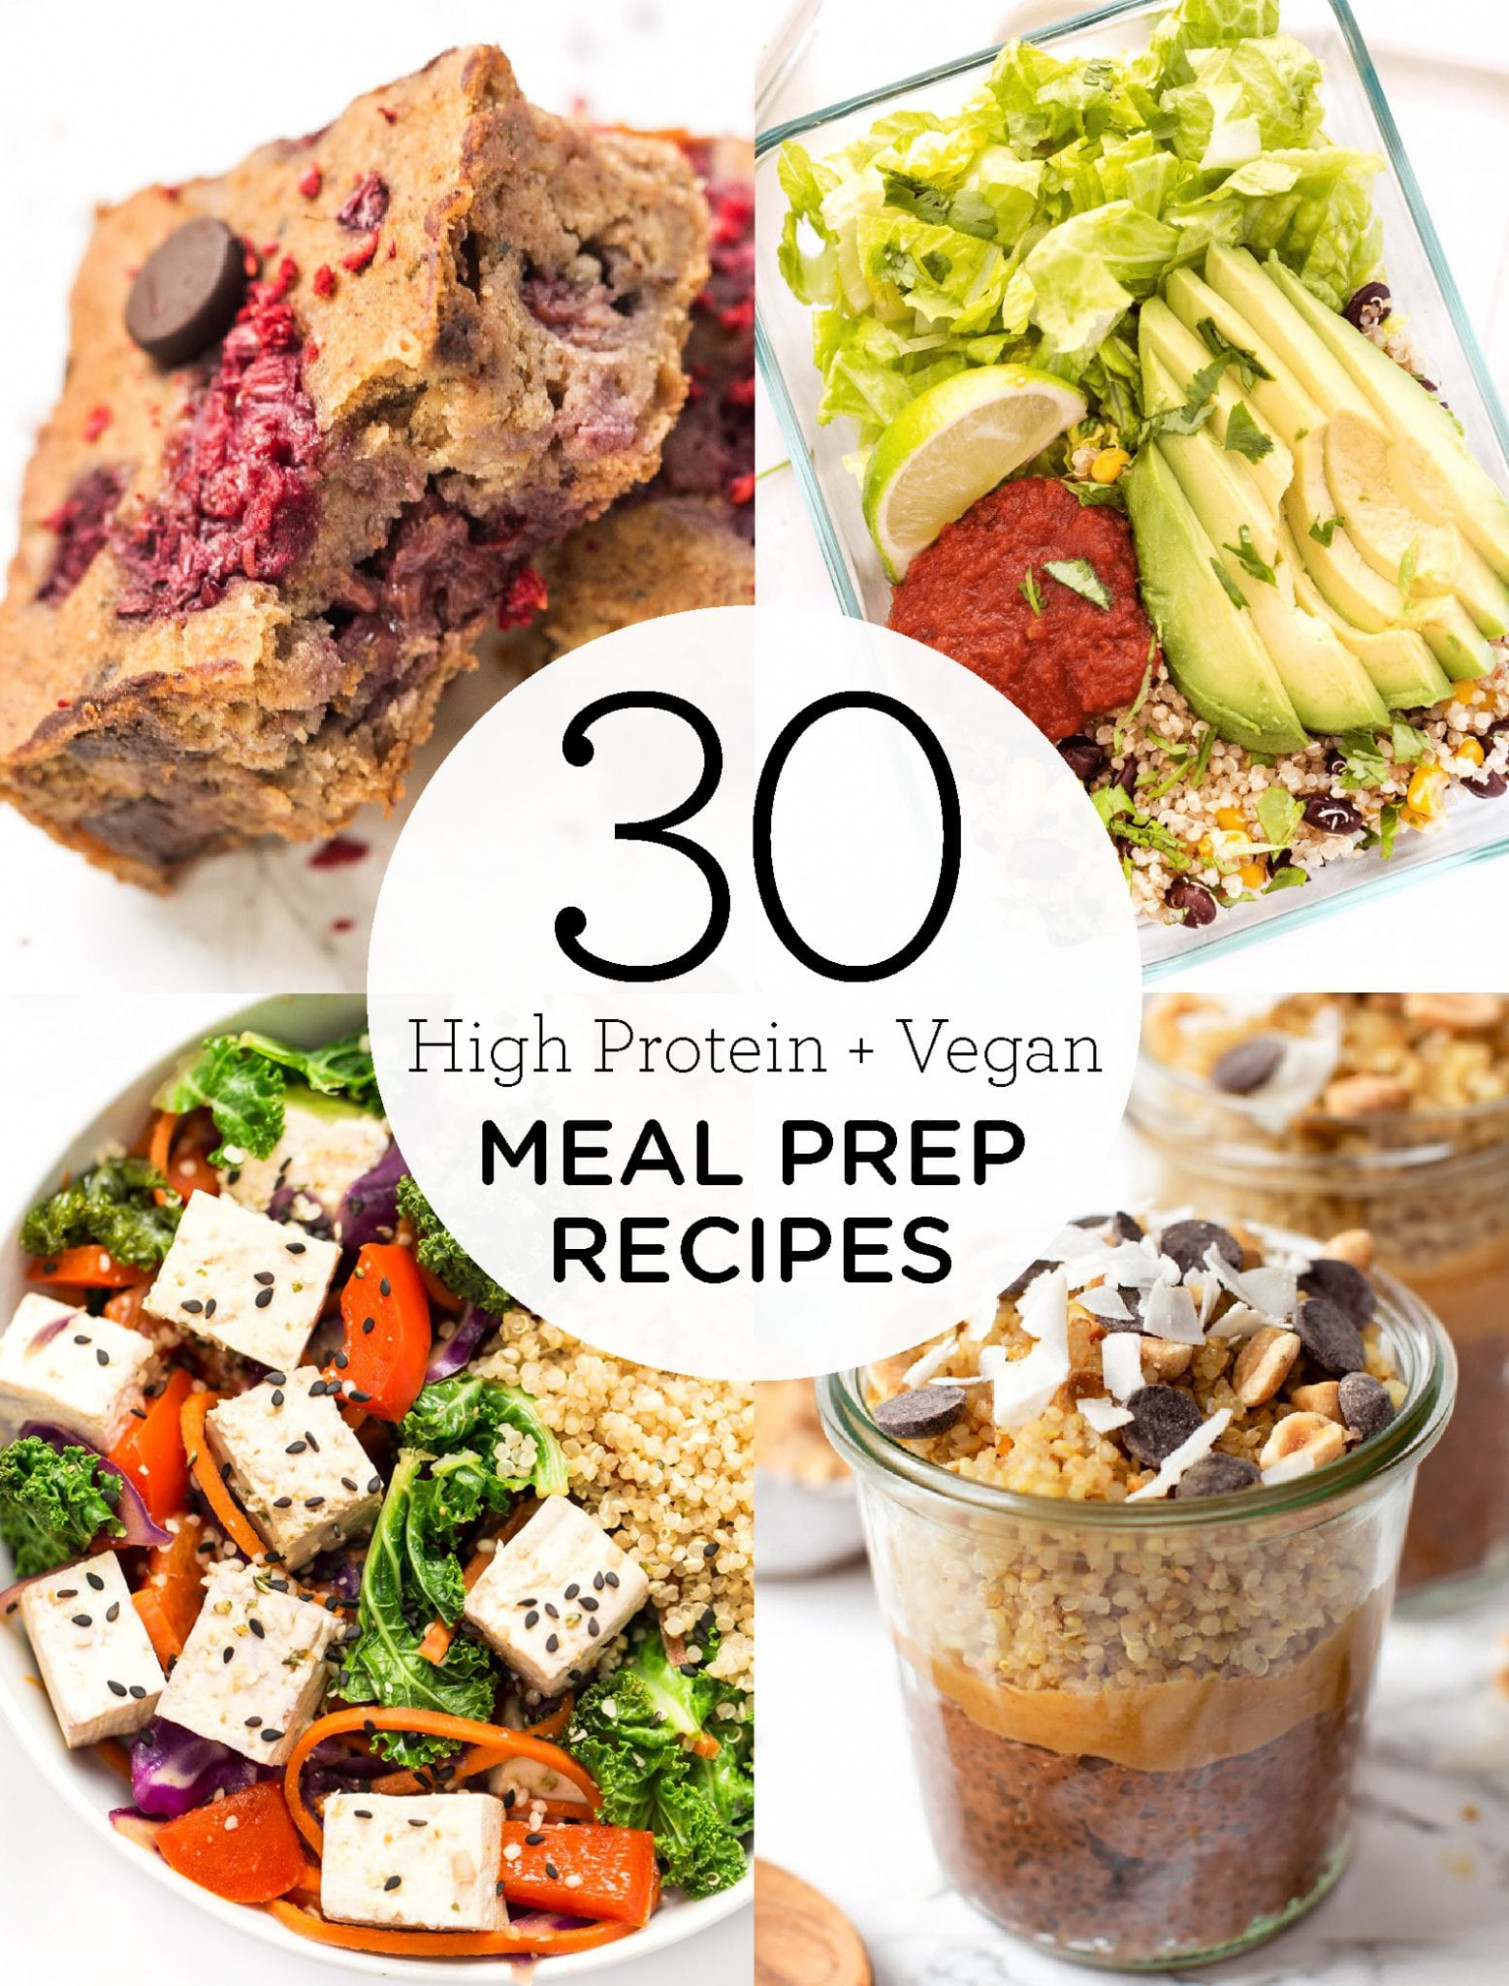 15 High Protein Vegan Meal Prep Recipes - Simply Quinoa - recipes vegetarian meal prep